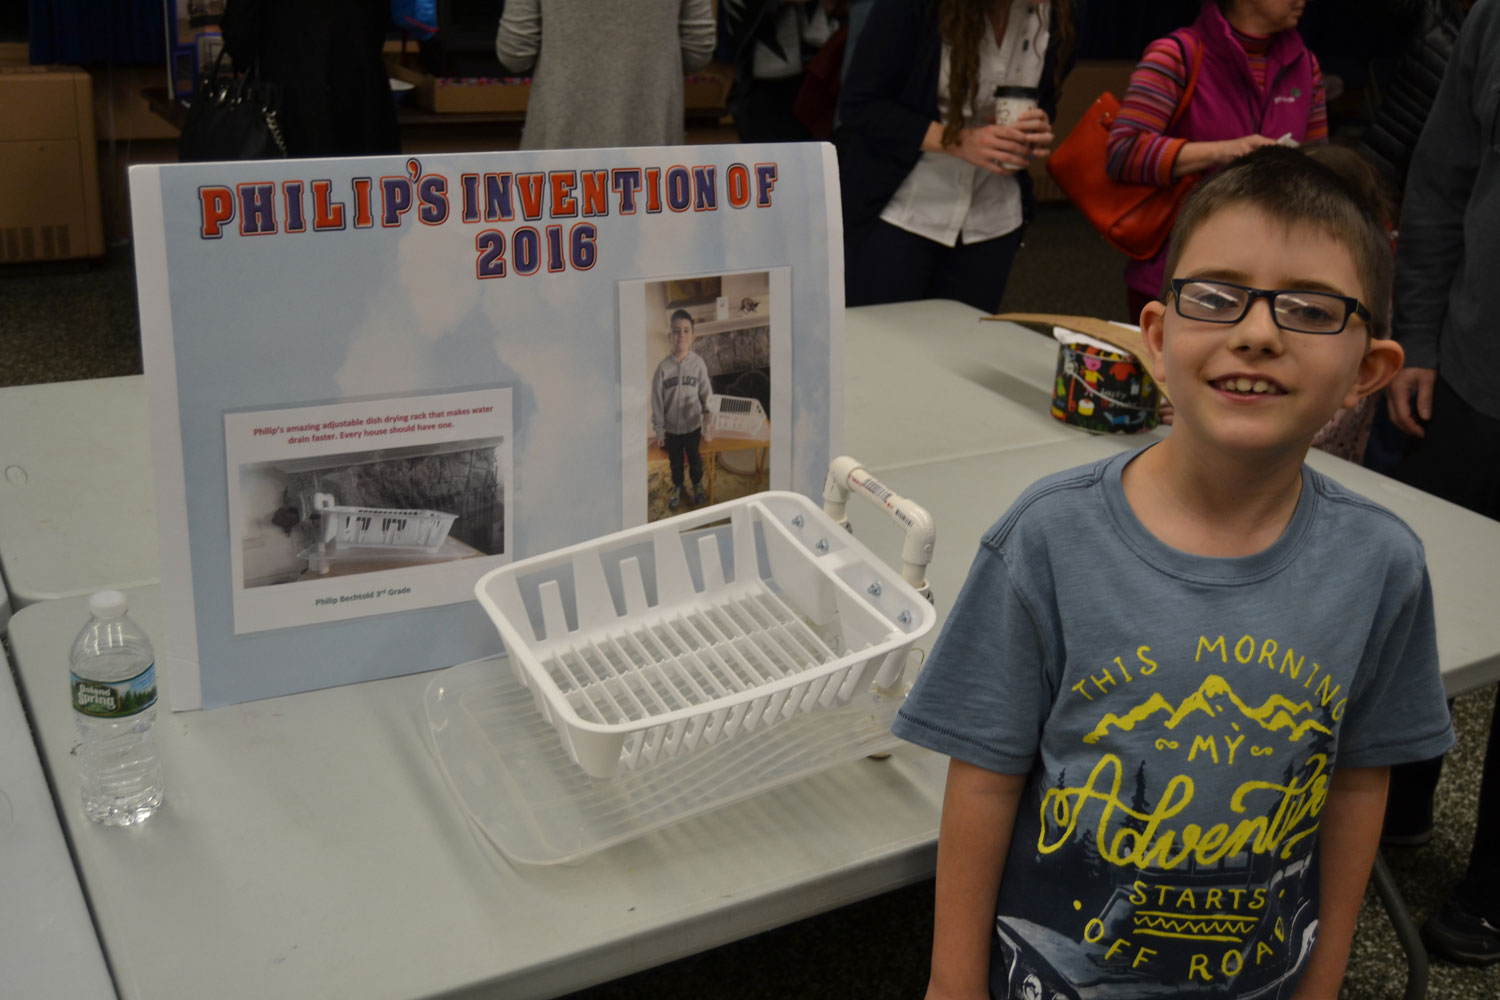 10 Cute Good Invention Ideas For School invention convention full of fresh ideas from young minds tbr news 2021